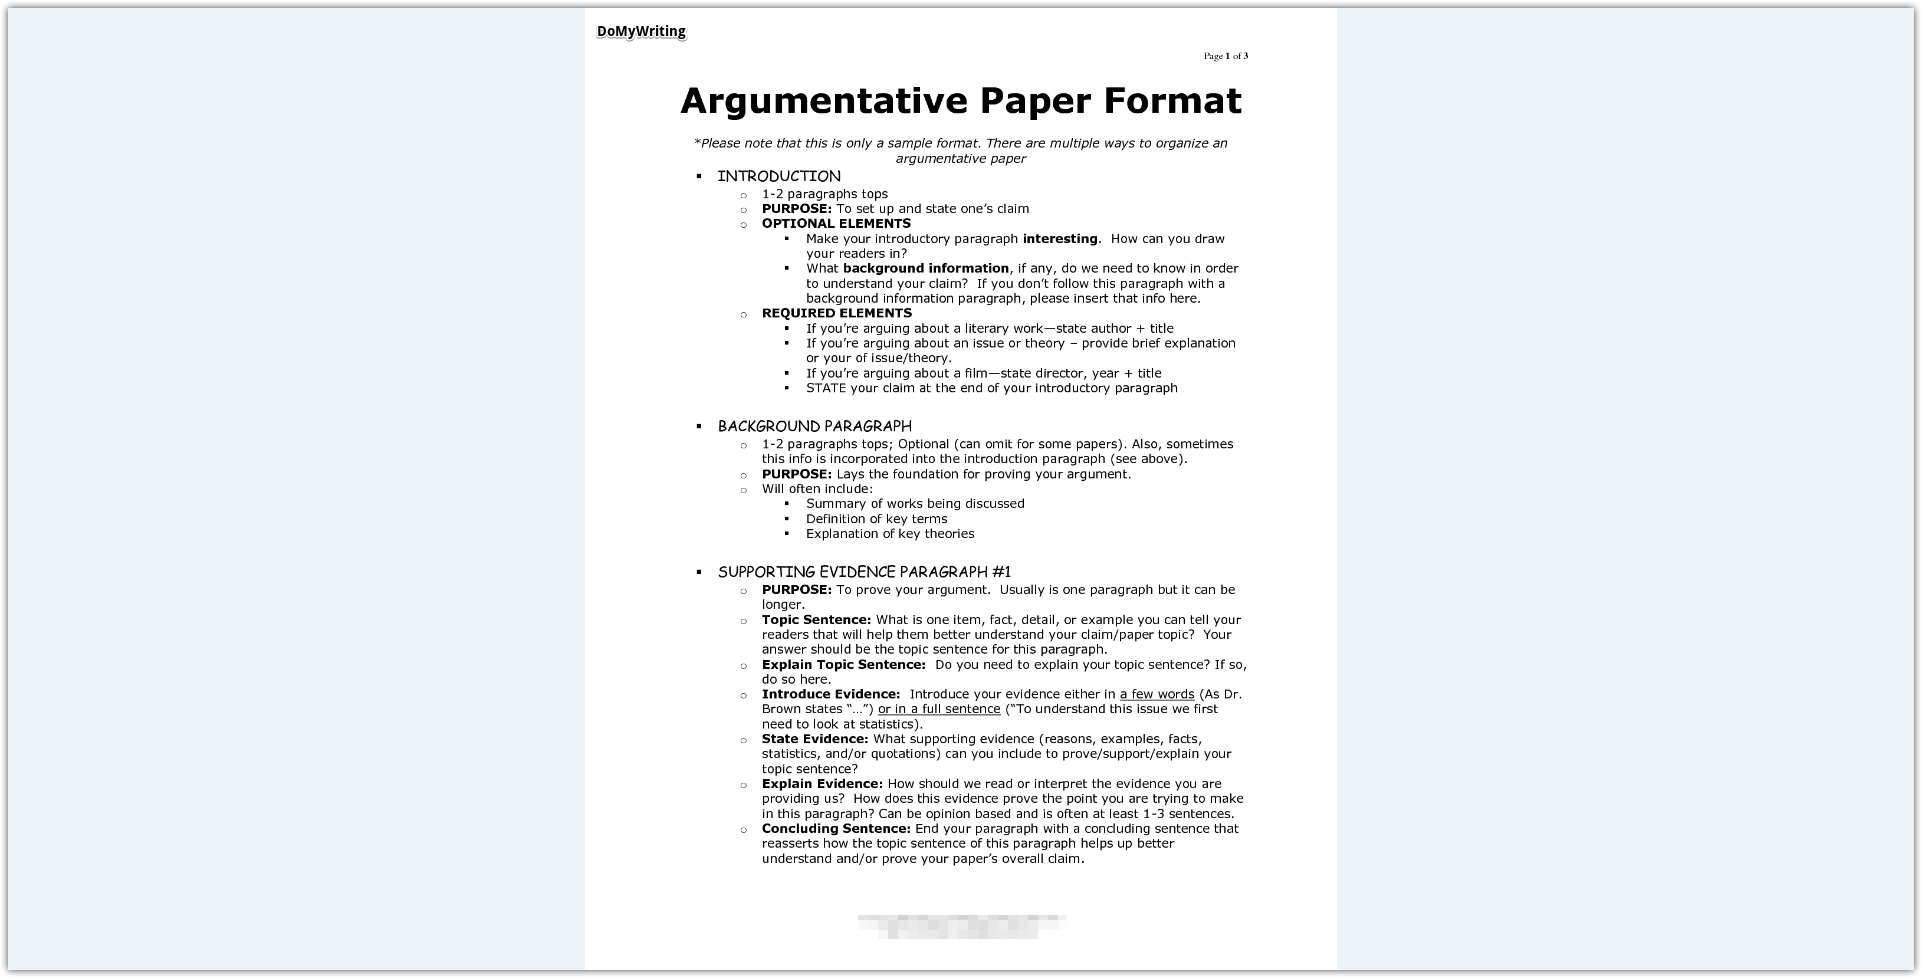 006 Argumentative Research Paper Topics For College English Essay Archaicawful Full